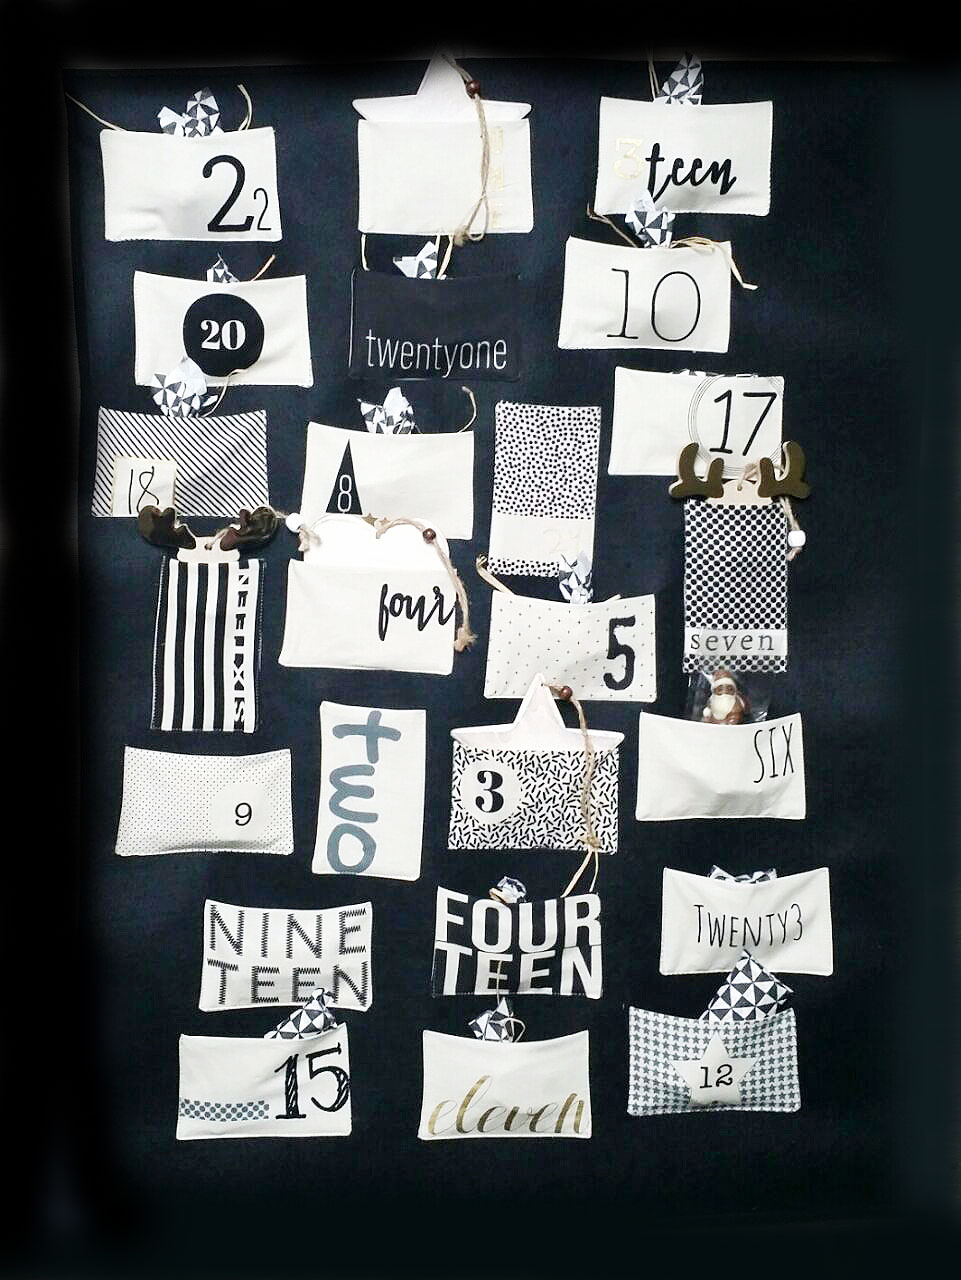 Advent calendar panel to sew a modern and fresh wall hanger in the popular hand-letterd graphic style.